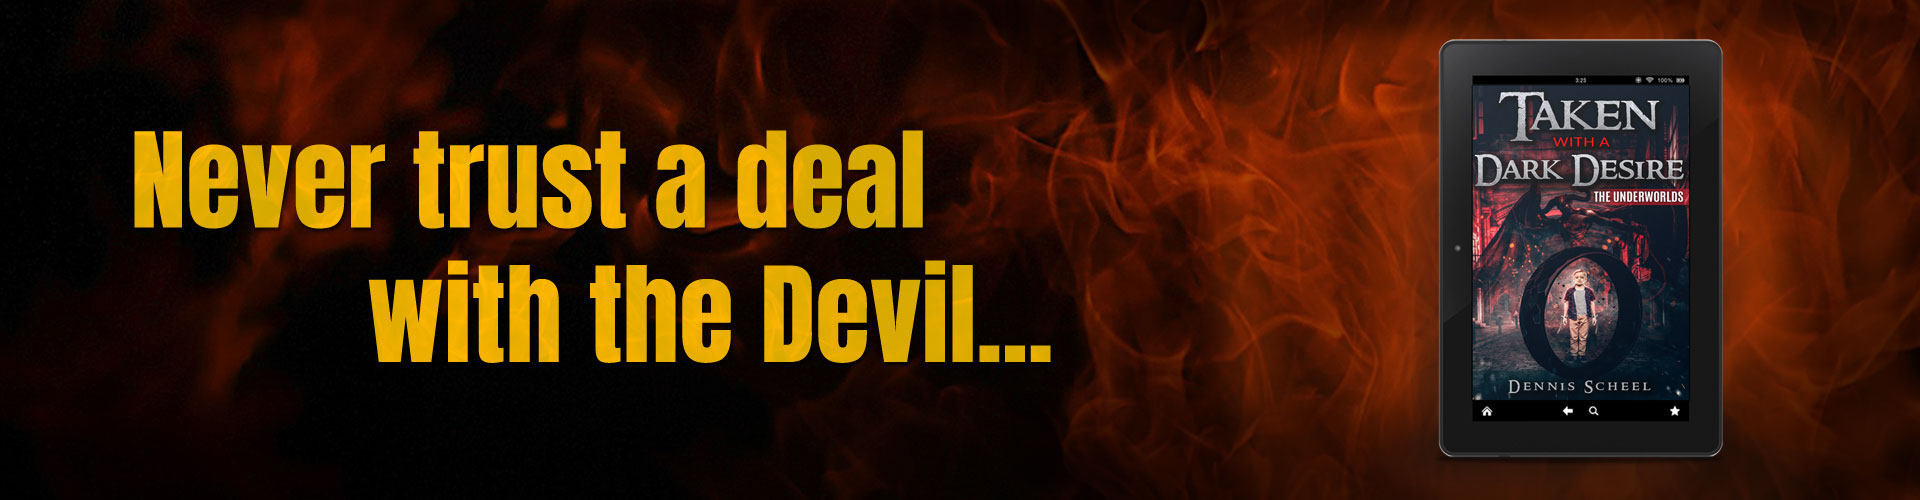 Never trust a deal with the Devil